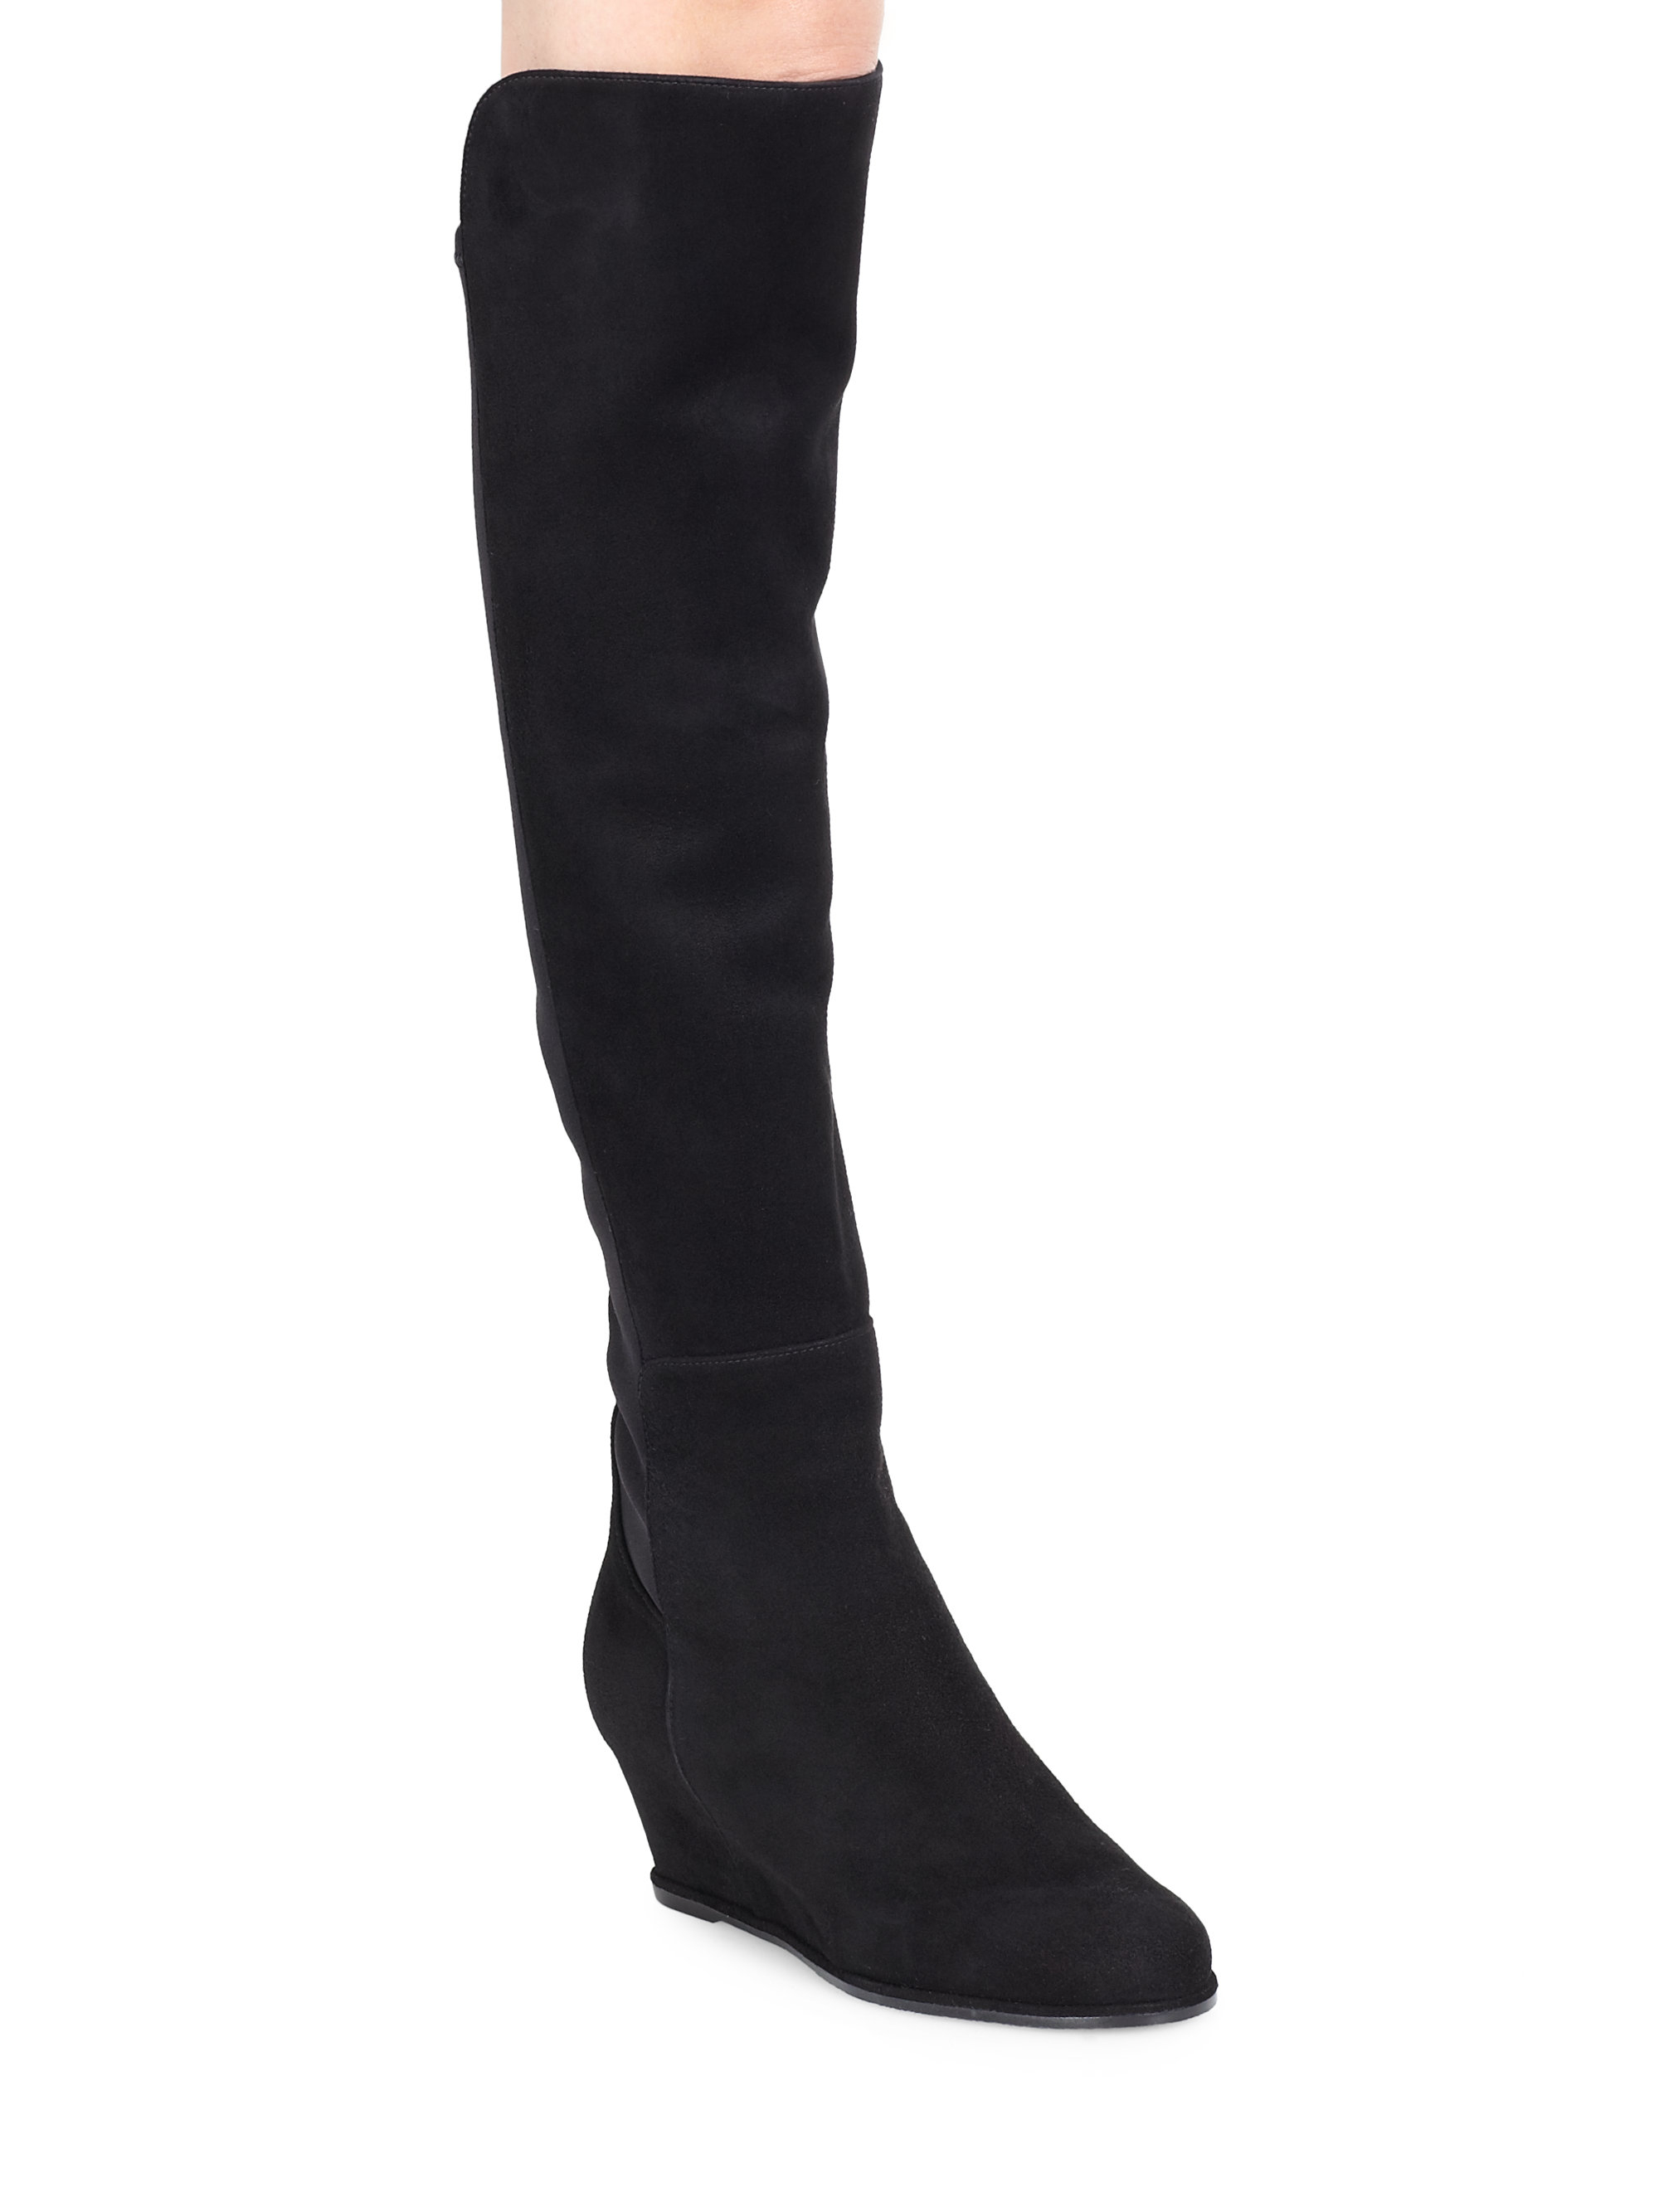 Stuart weitzman Suede Over-the-knee Wedge Boots in Black | Lyst